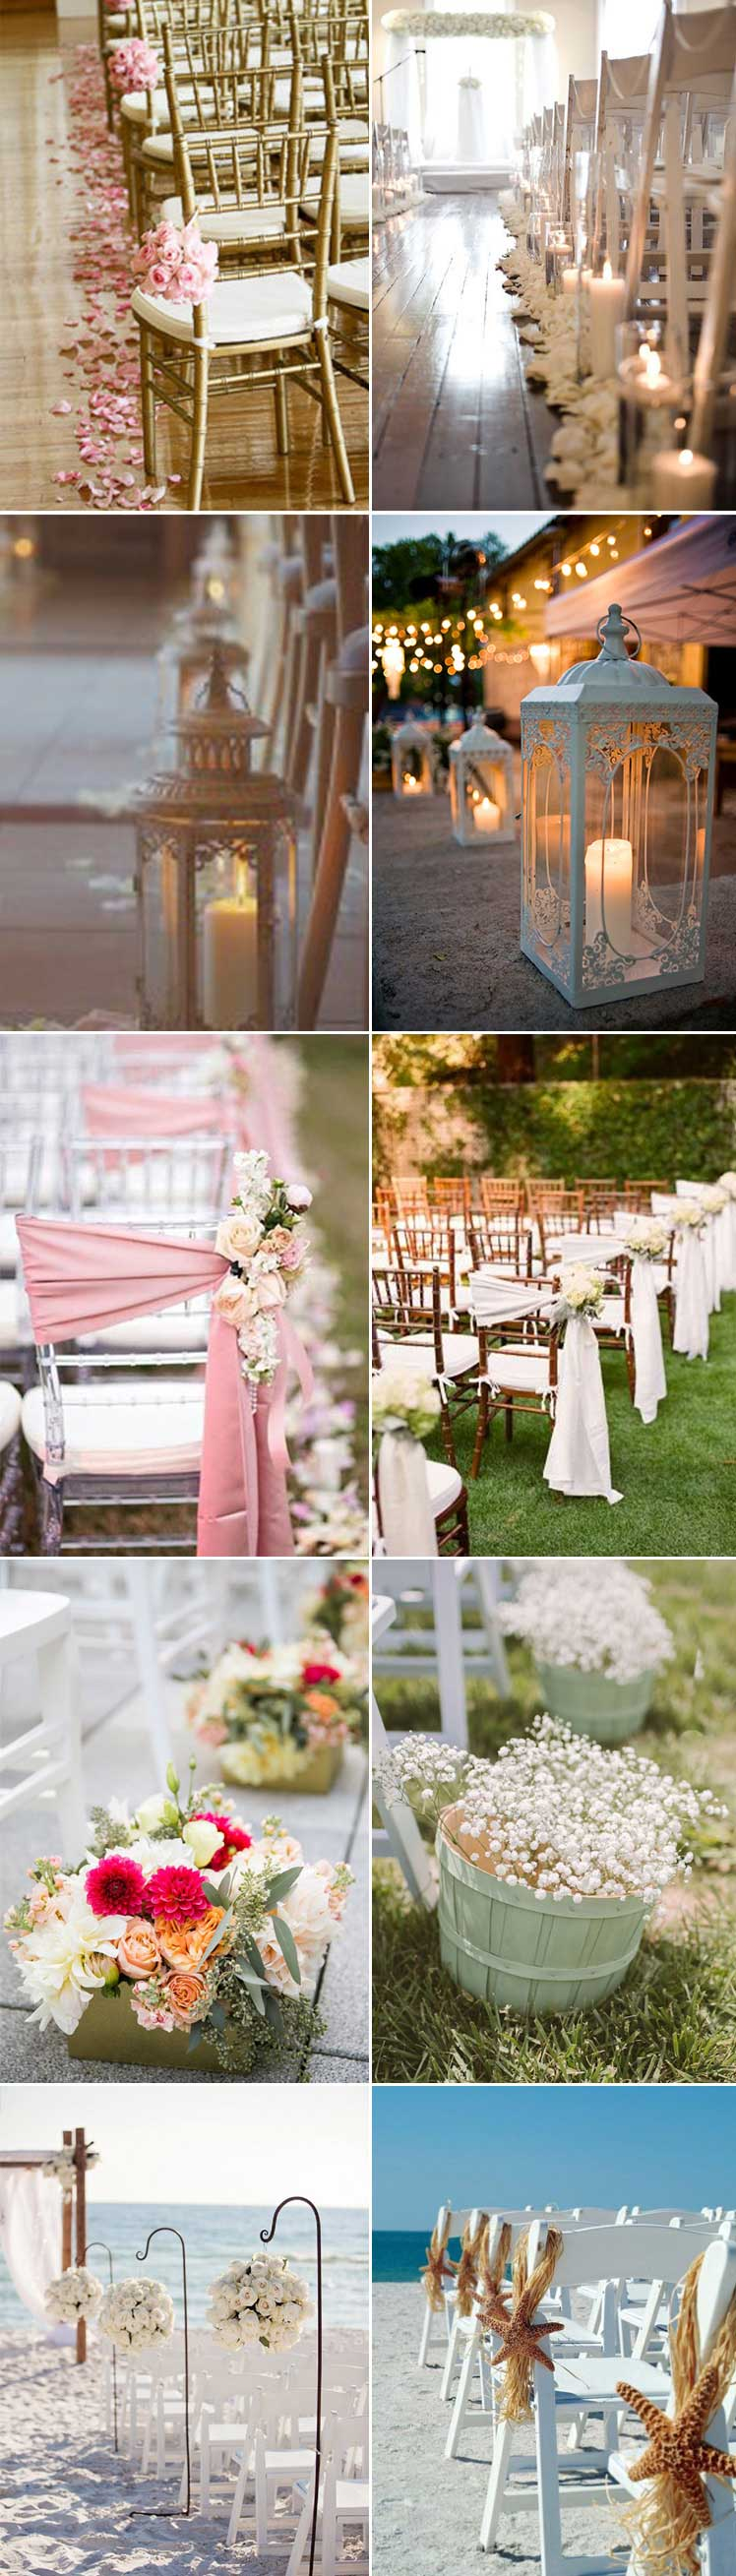 decorate your wedding aisle with petals, lanterns or chair sashes